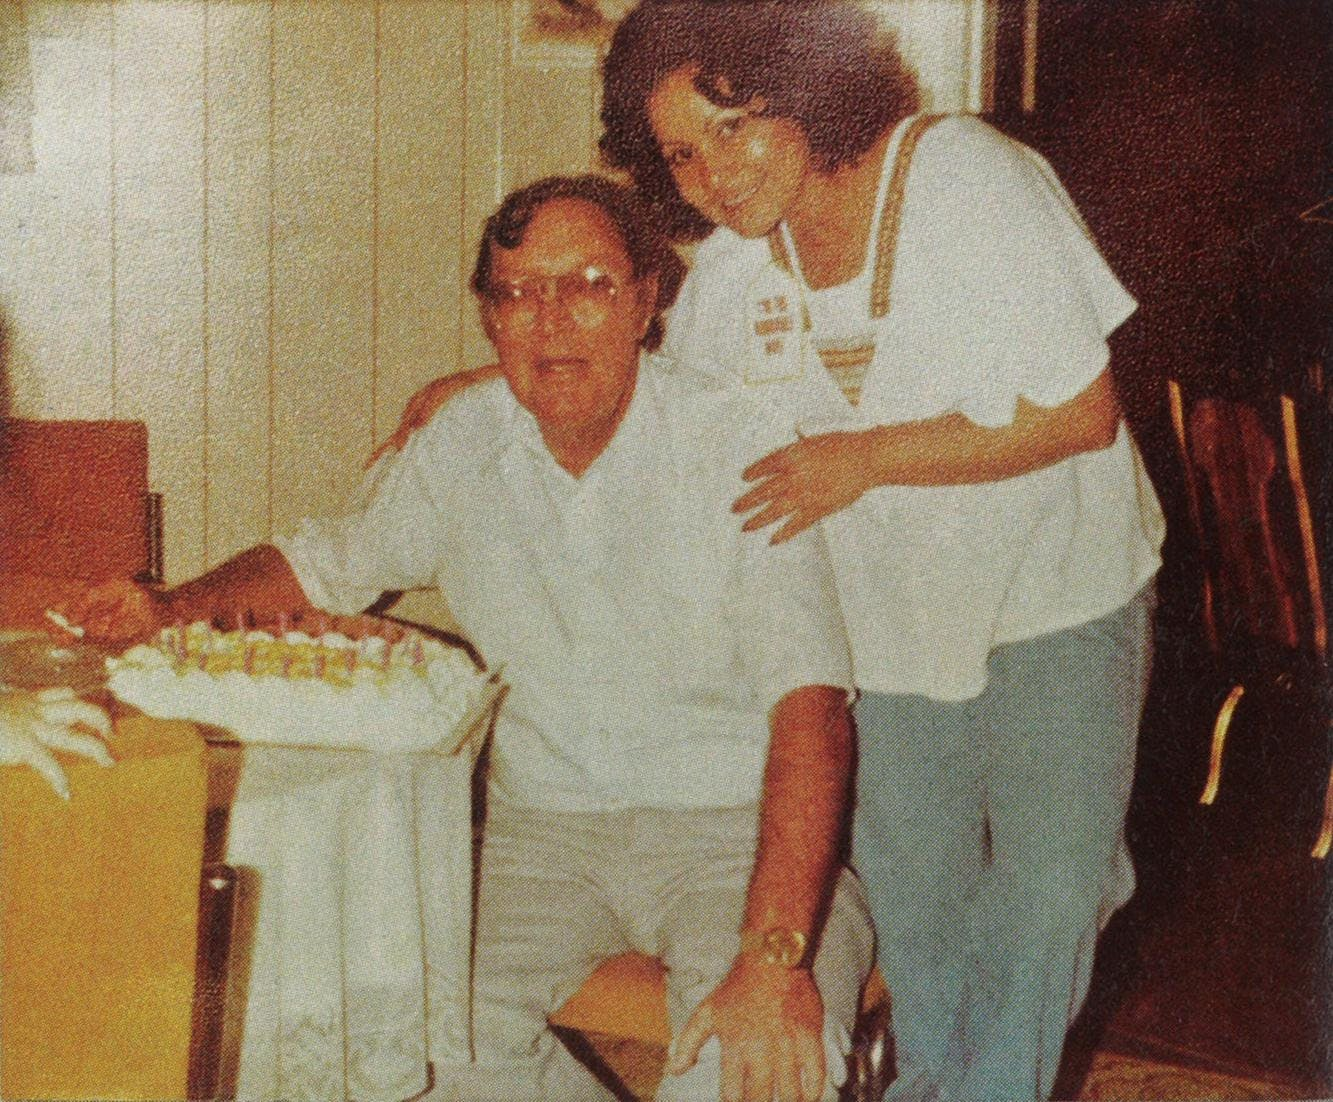 Haley and Martha celebrate their wedding in Harlingen in 1980.